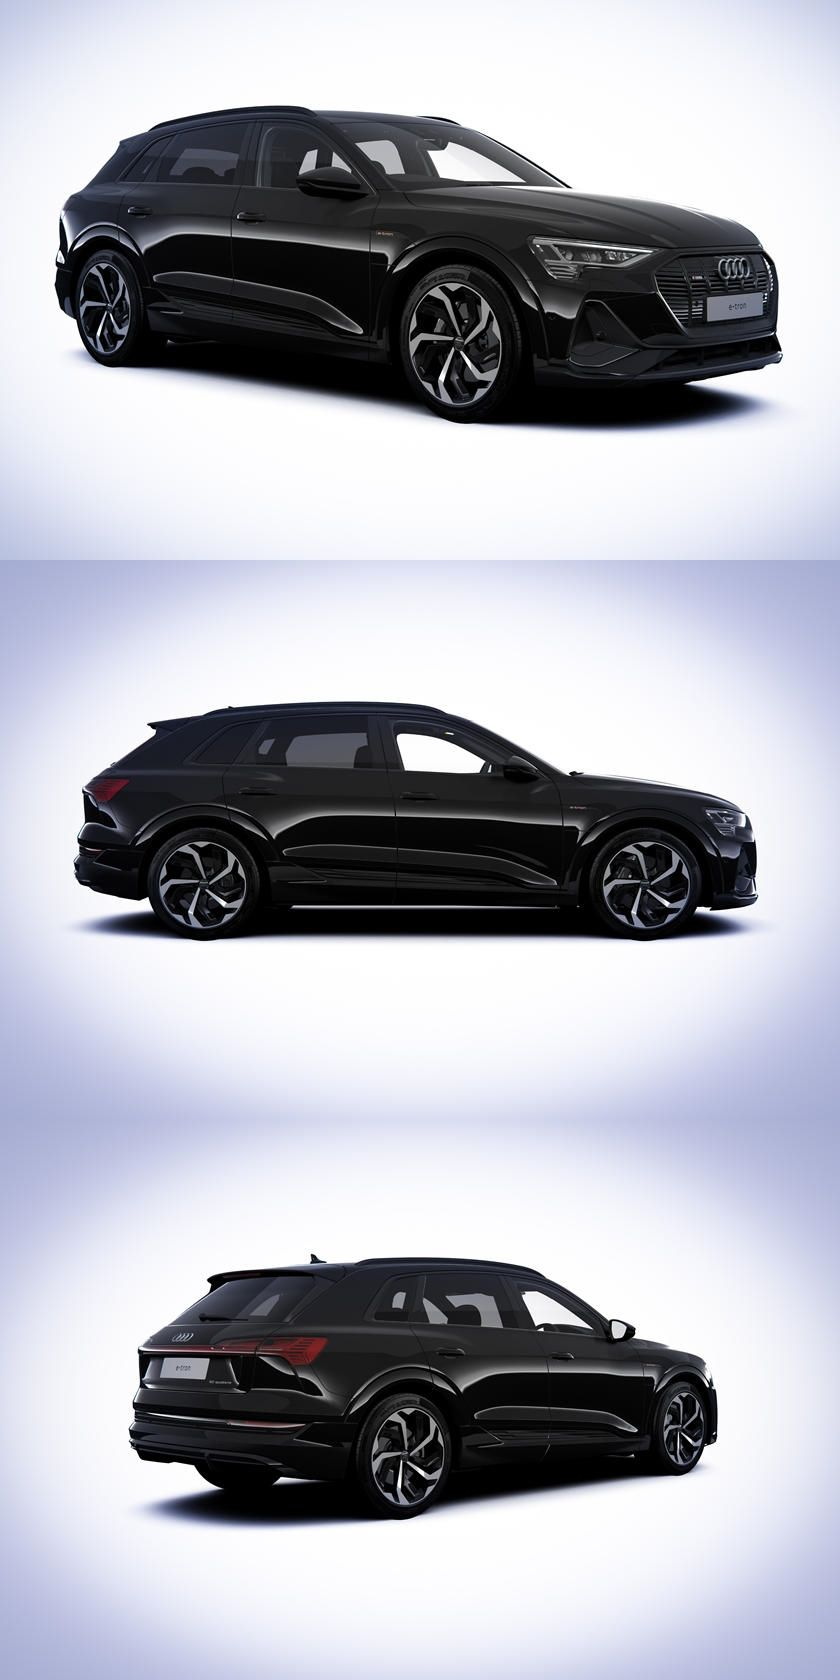 Audi etron Black Edition Shows The Dark Side Of